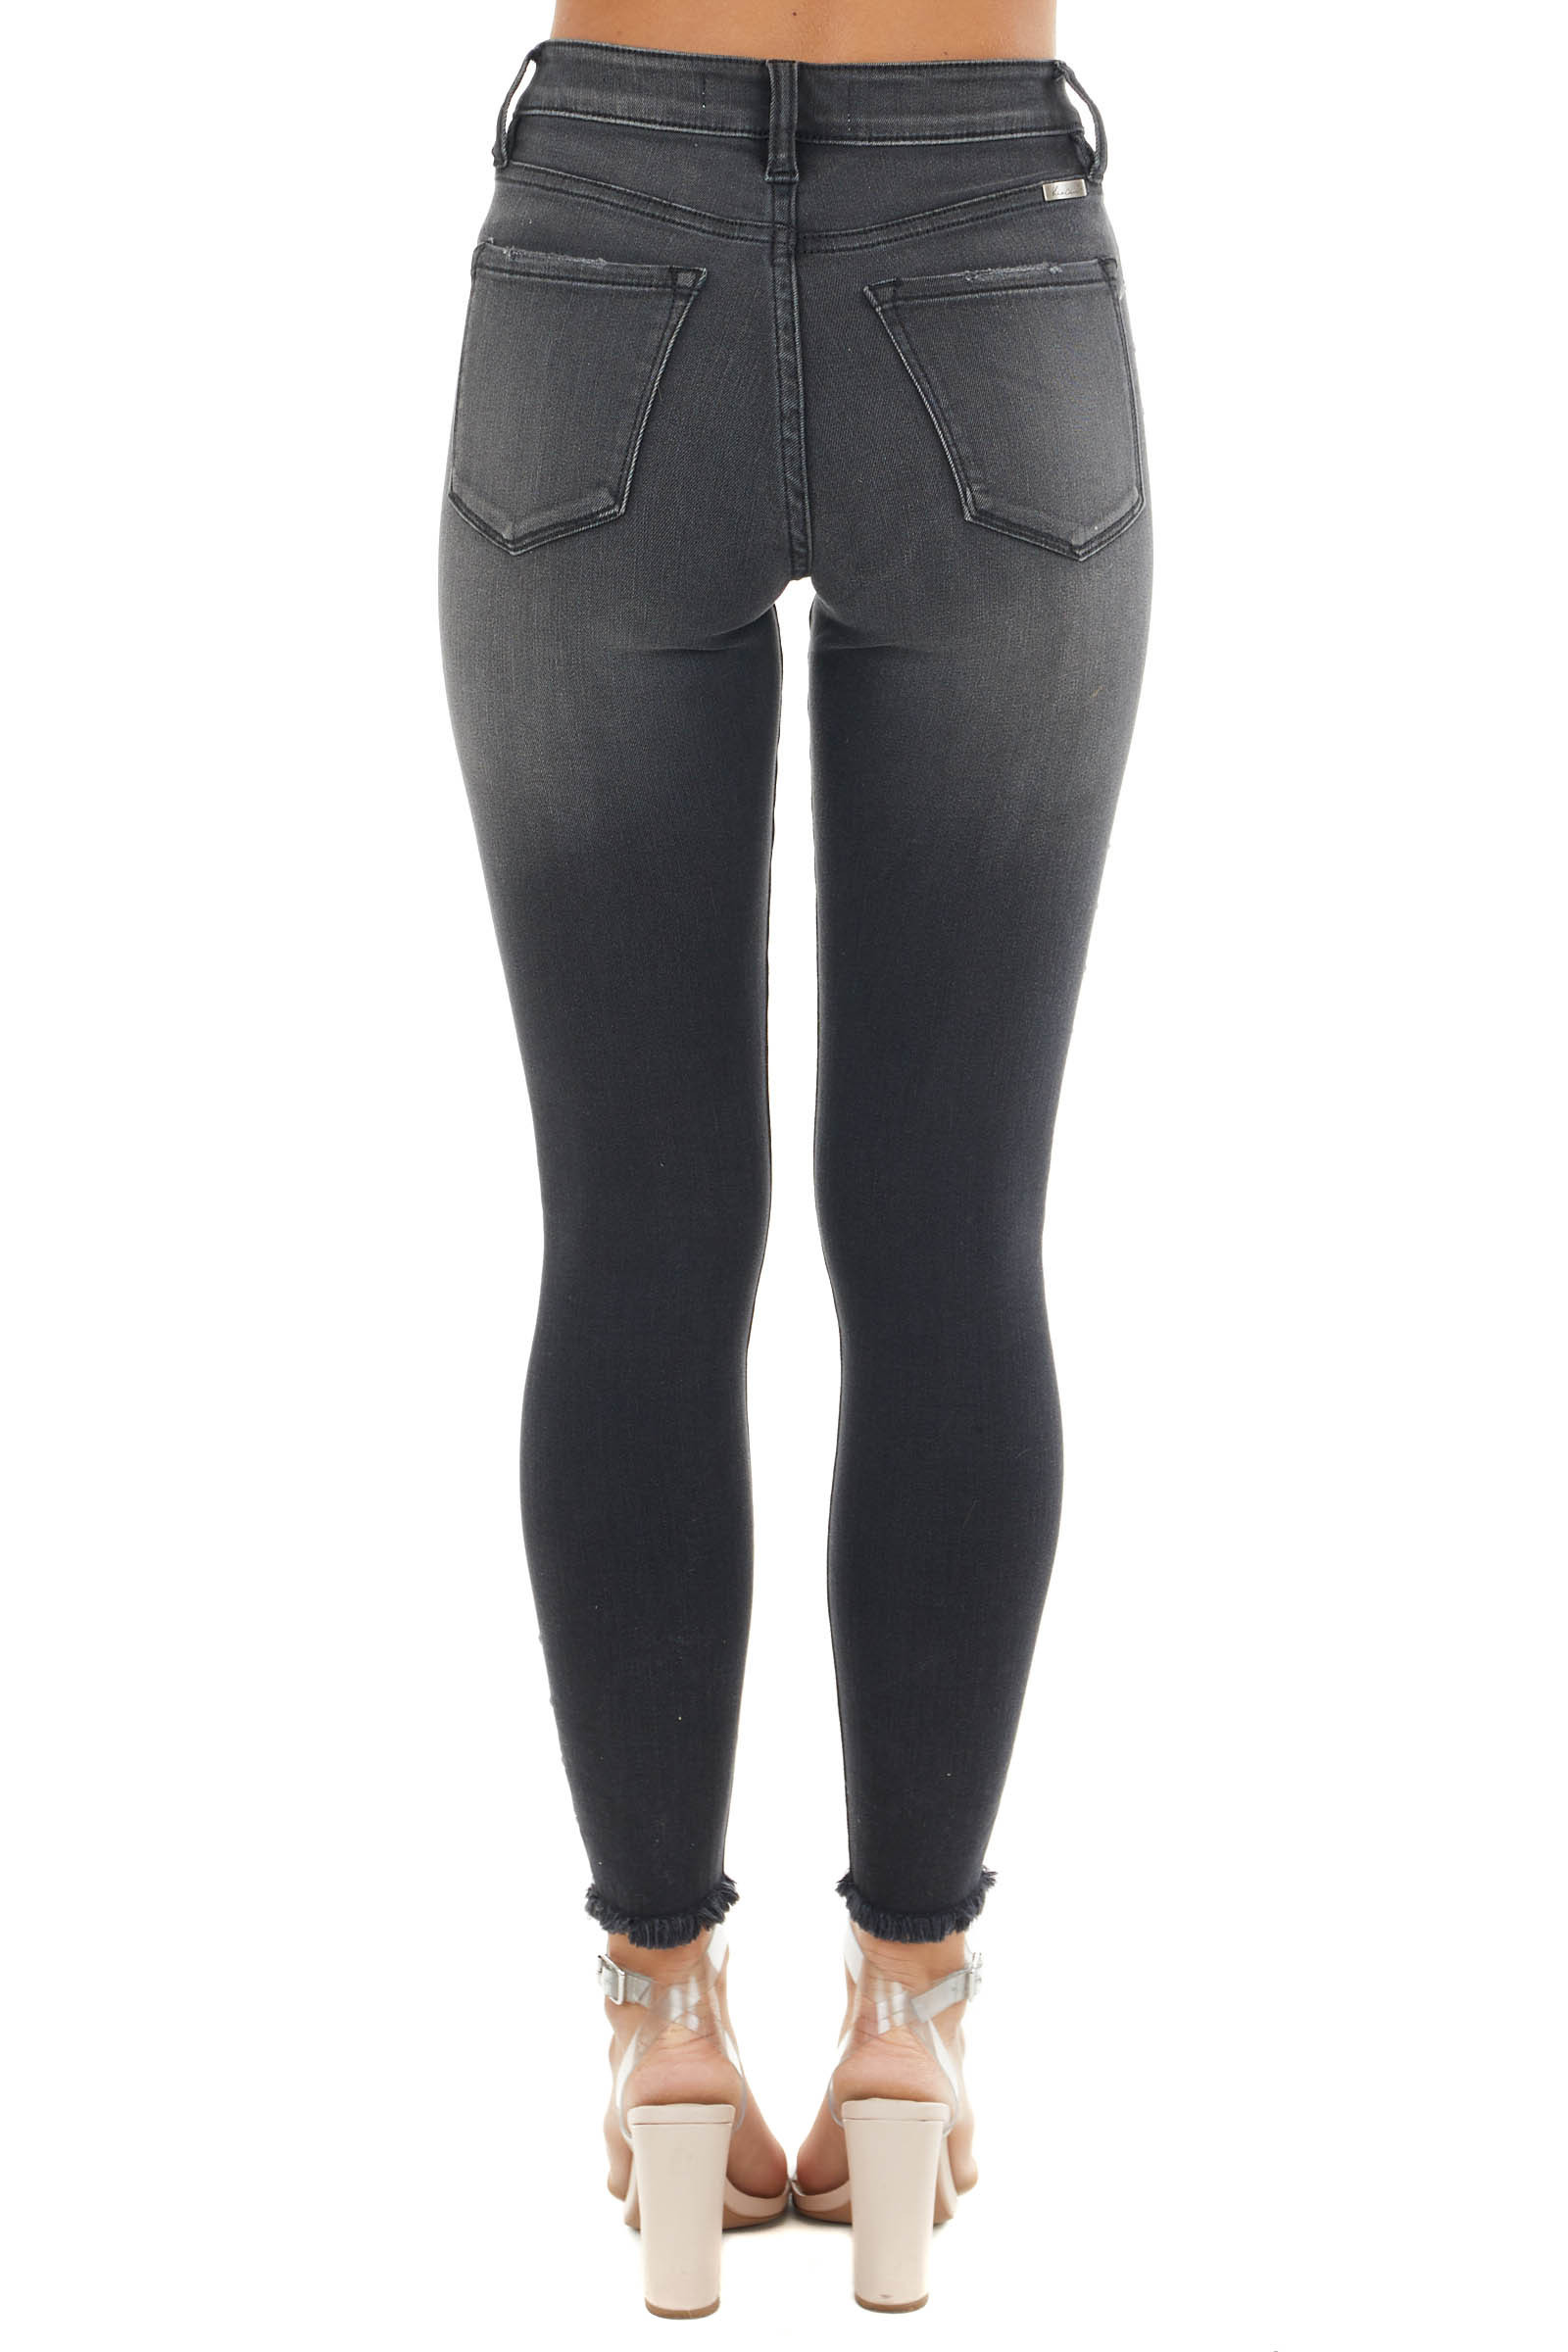 Faded Black High Rise Skinny Jeans with Side Stud Details